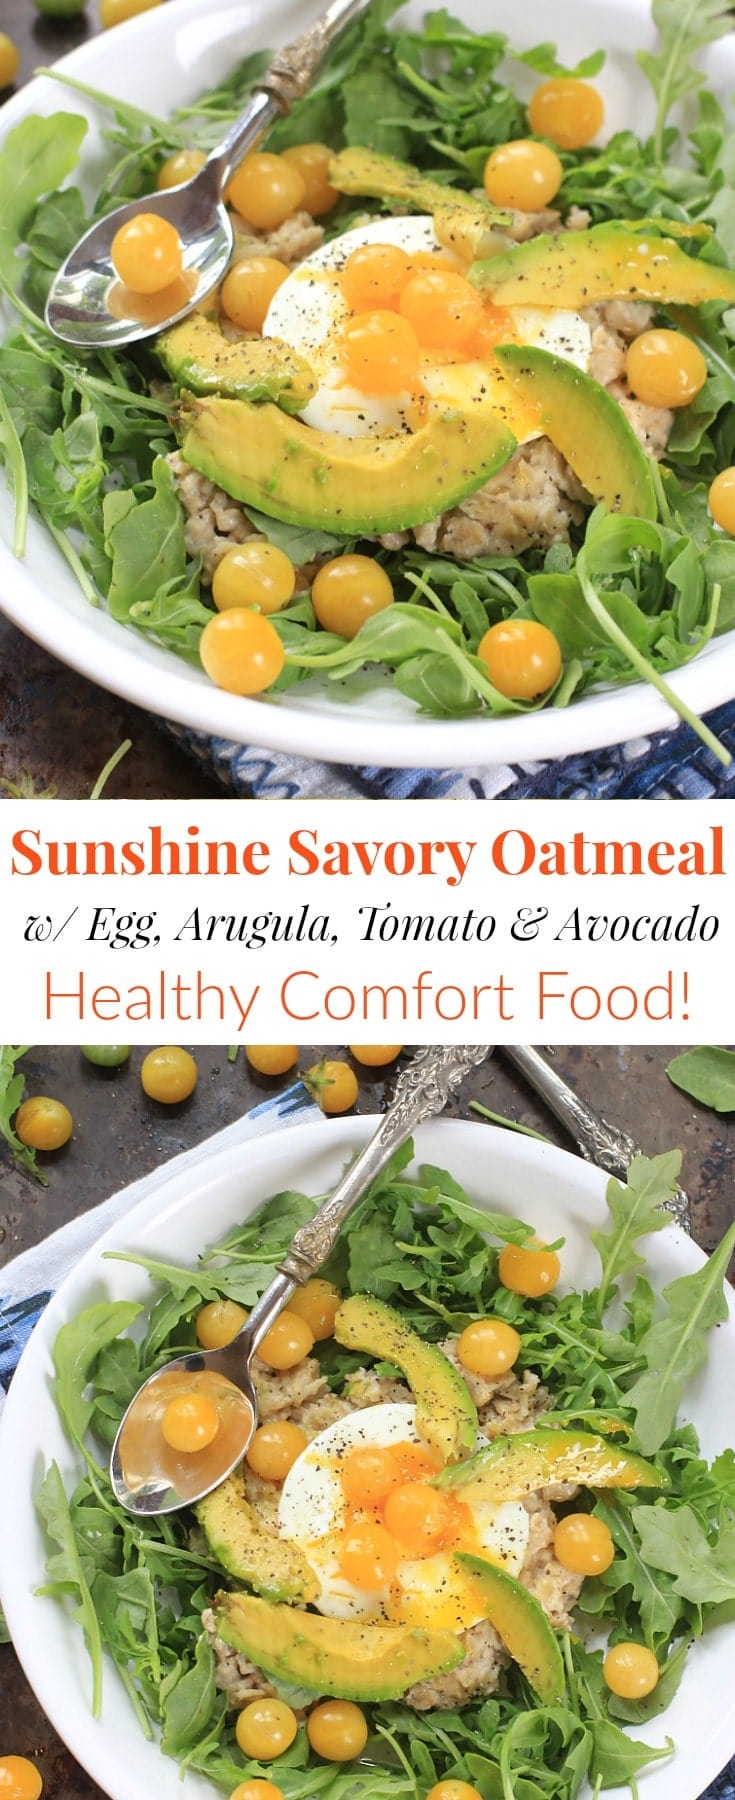 This quick and easy Sunshine Savory Oatmeal w/ Egg, Arugula, Tomatoes, and Avocado, is the ultimate healthy comfort food for breakfast, or any meal of the day! Get the gluten free and vegetarian recipe at EA Stewart, The Spicy RD @thespicyrd